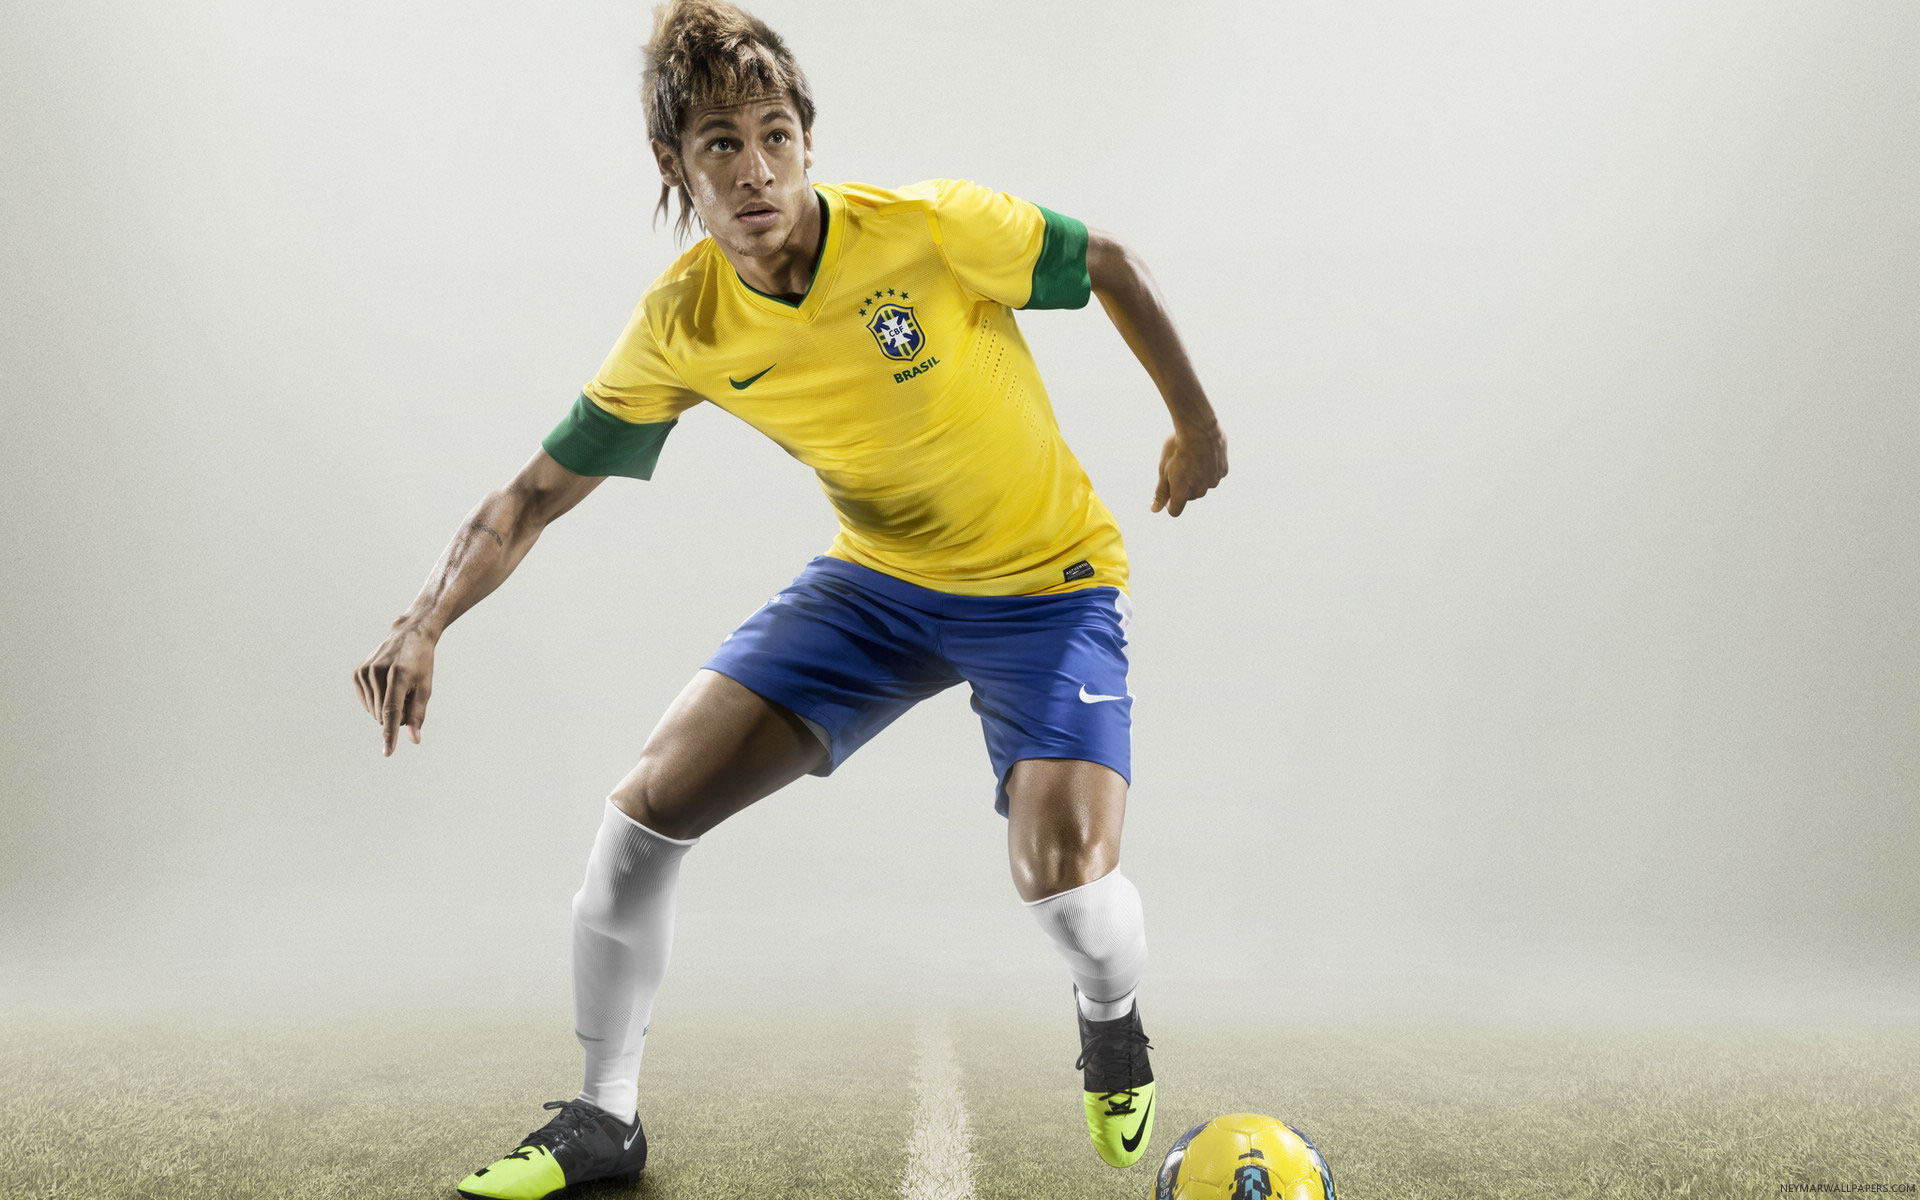 Neymar with football wallpaper